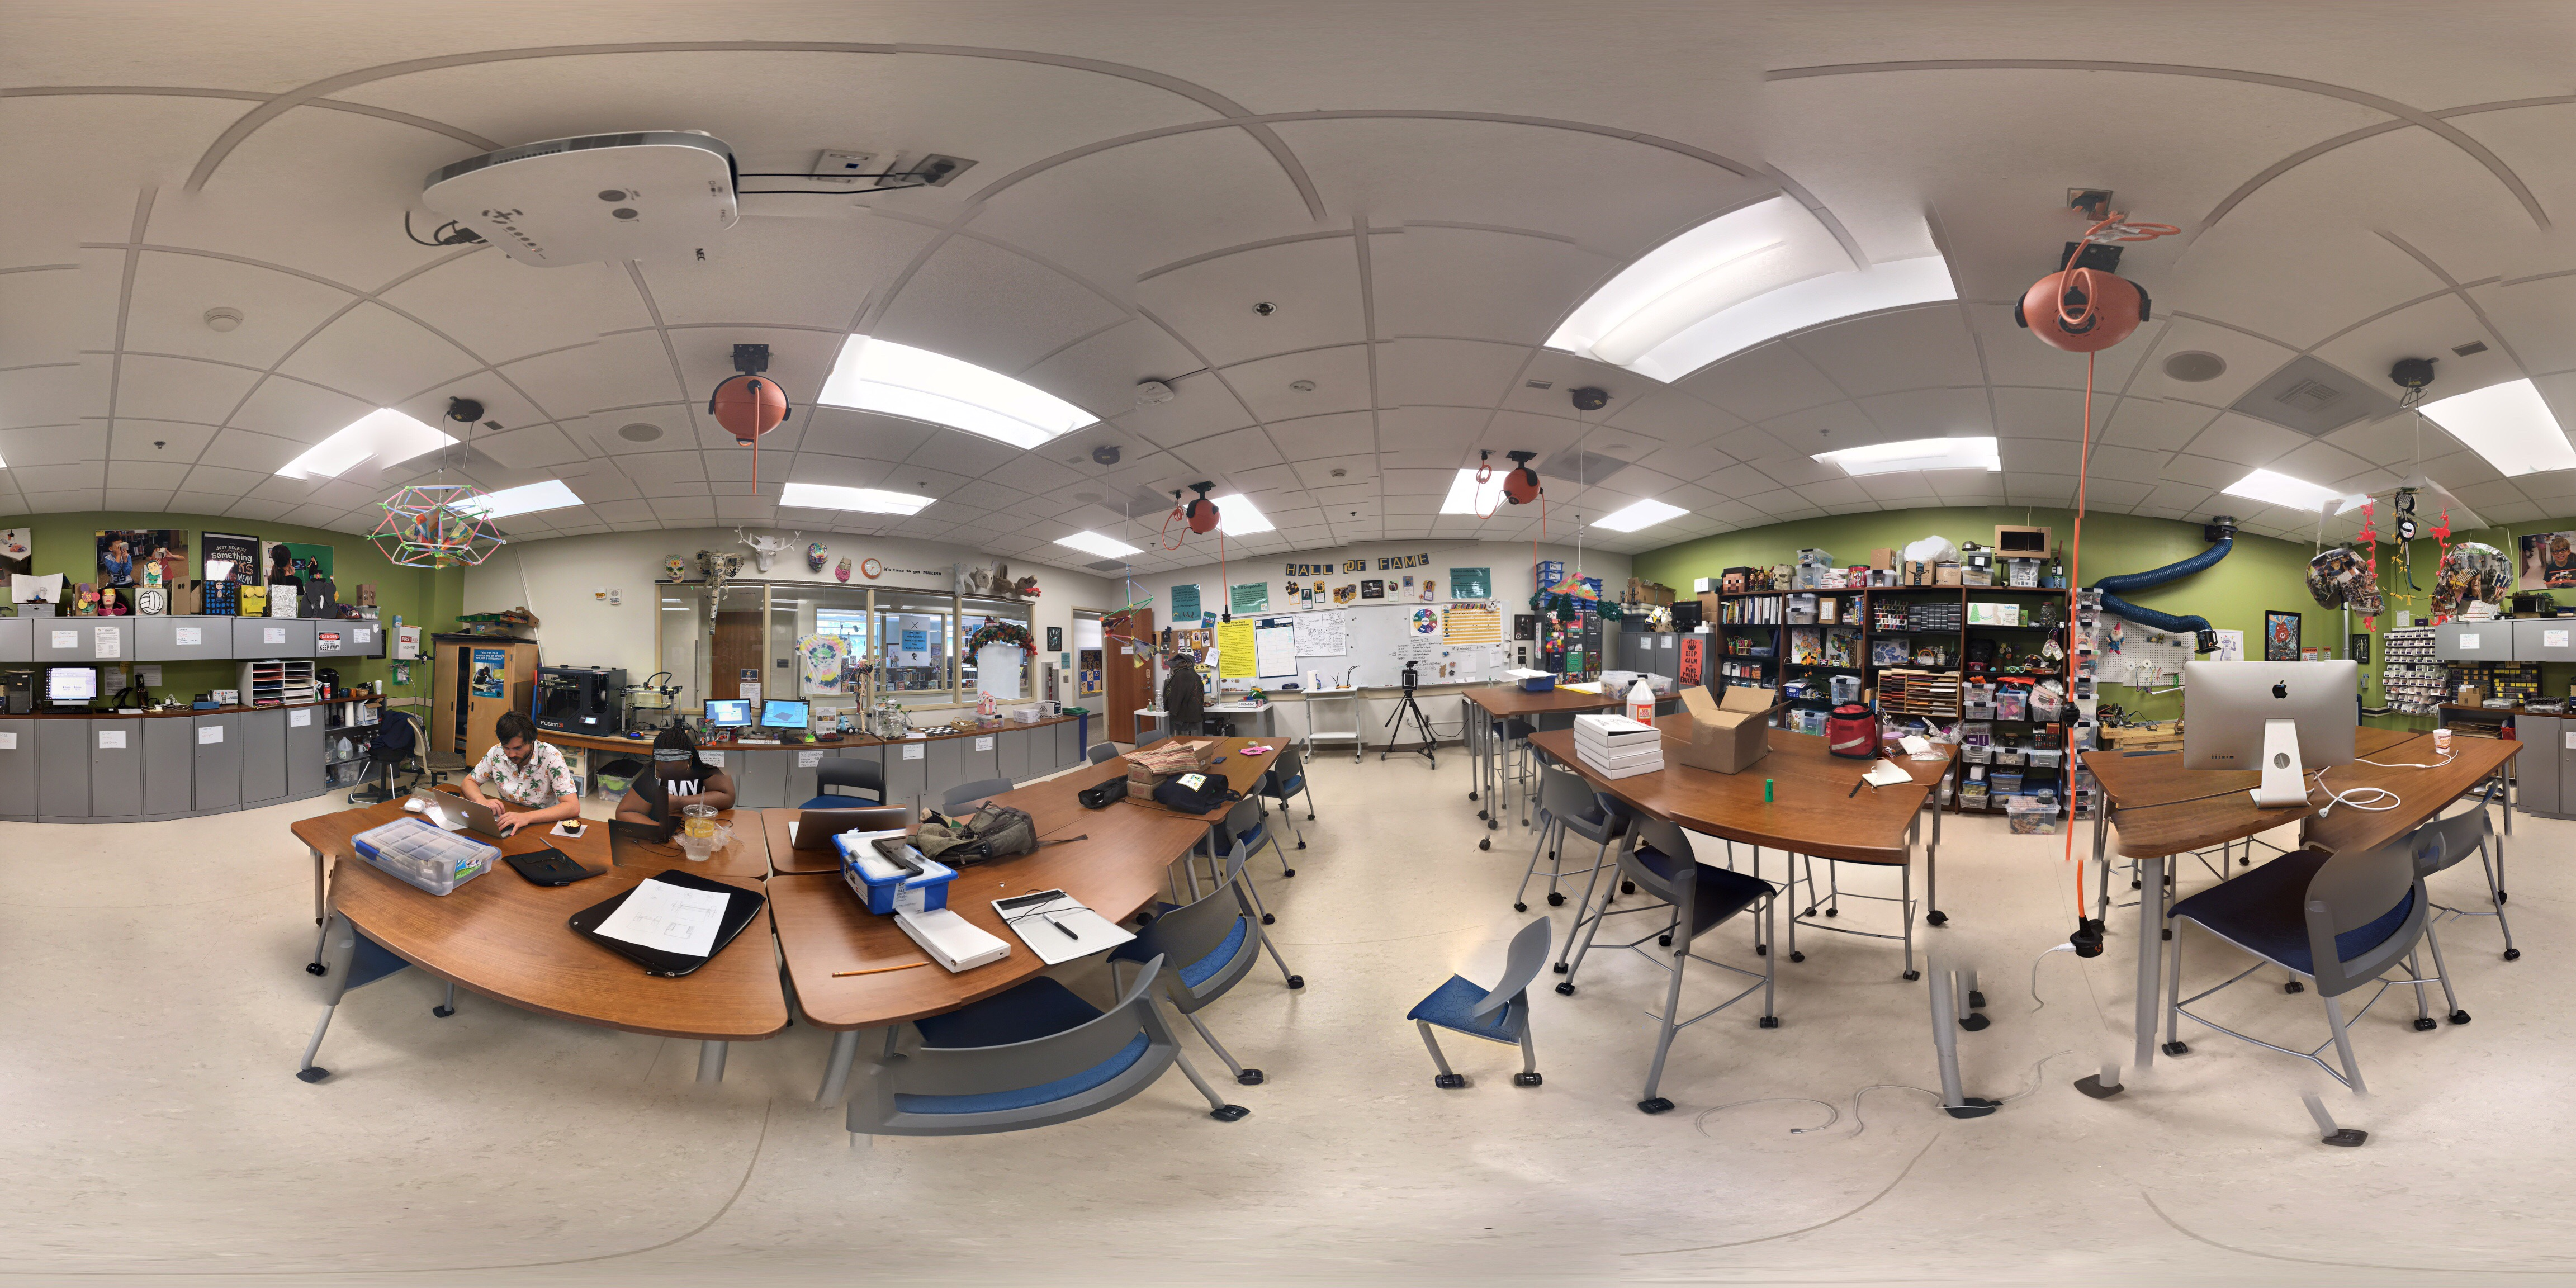 360 view of the SDS